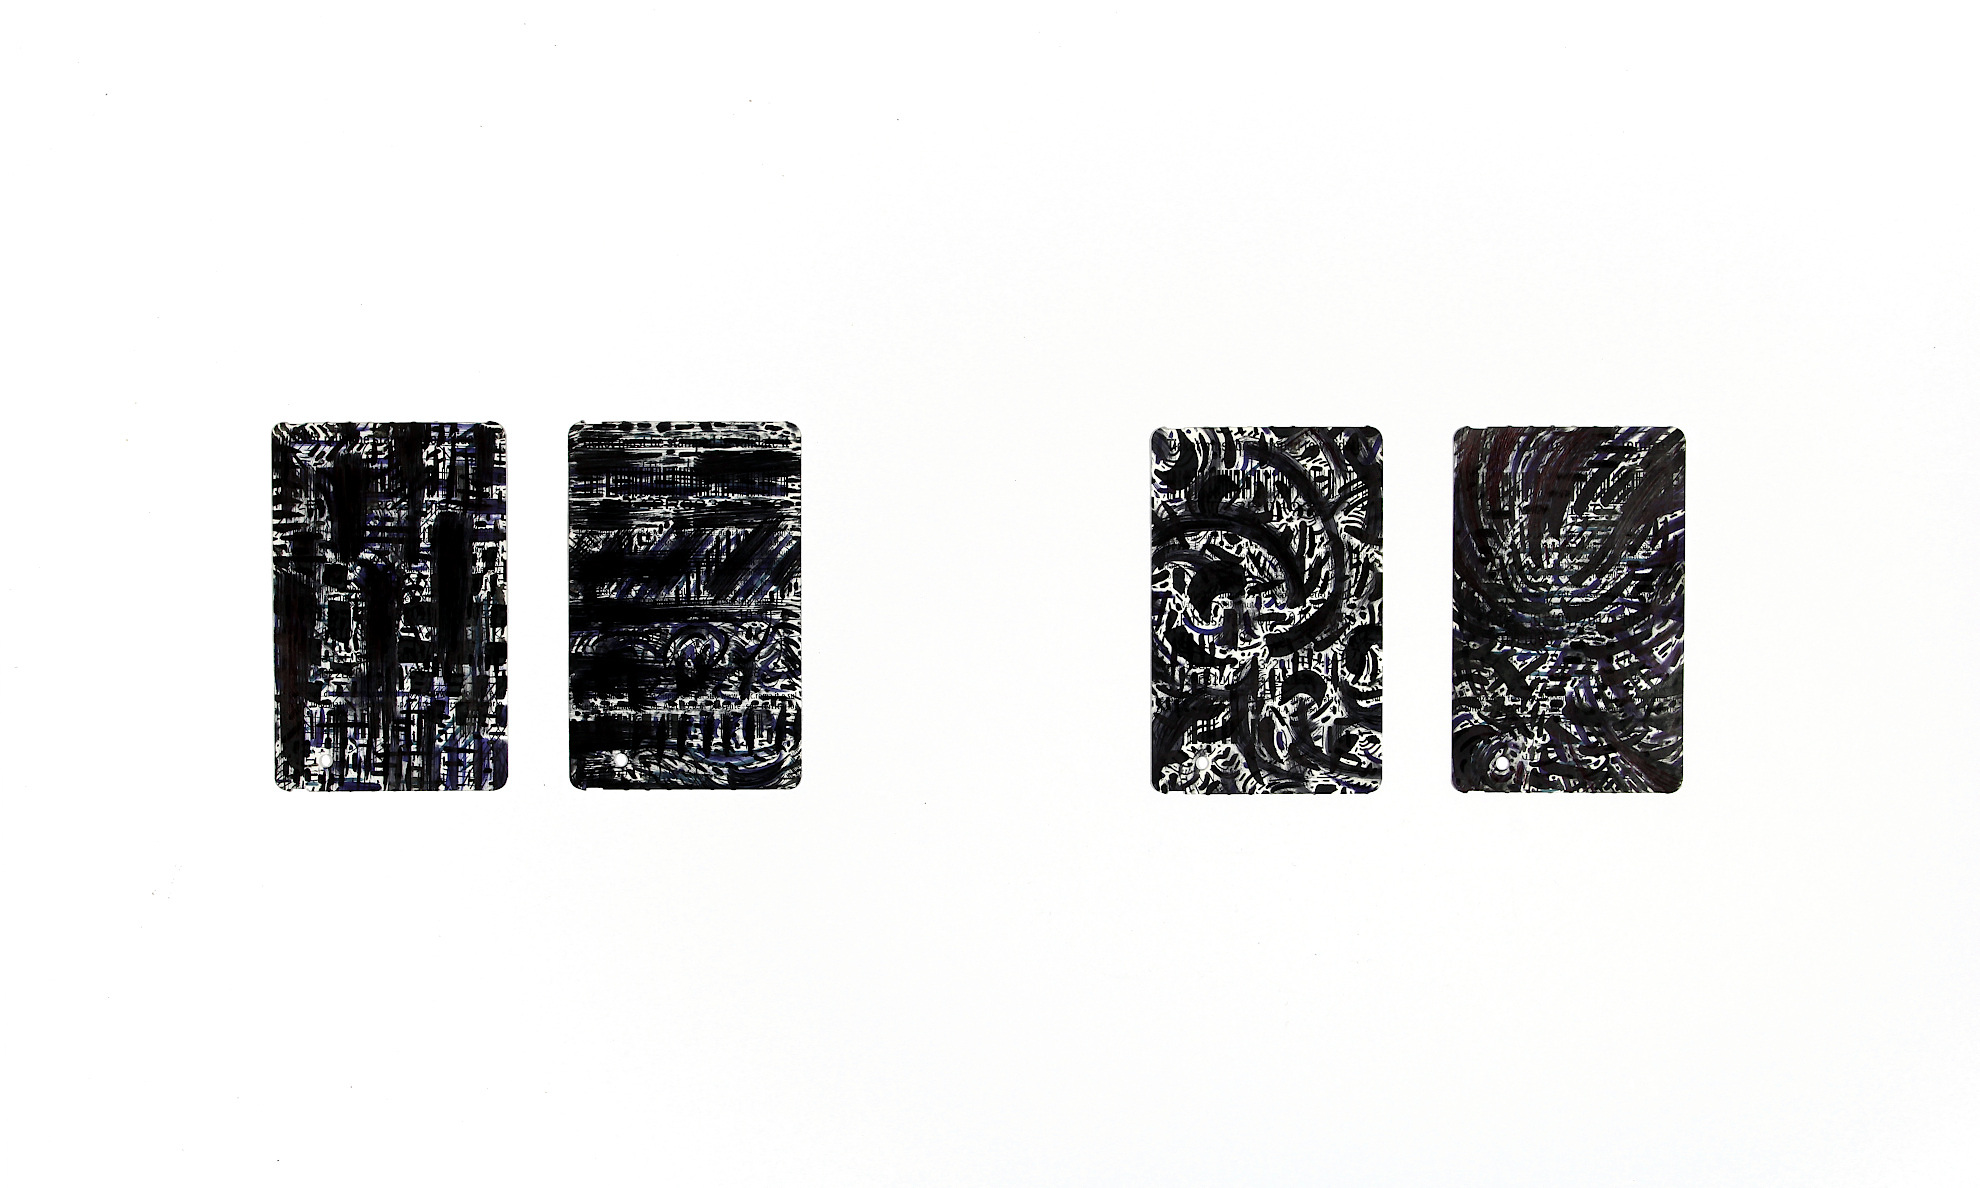 monosema - inks on printed and shaped paper, each one 8,5 x 5,5 cm - 3,3 x 2,1 in _ 2017/20